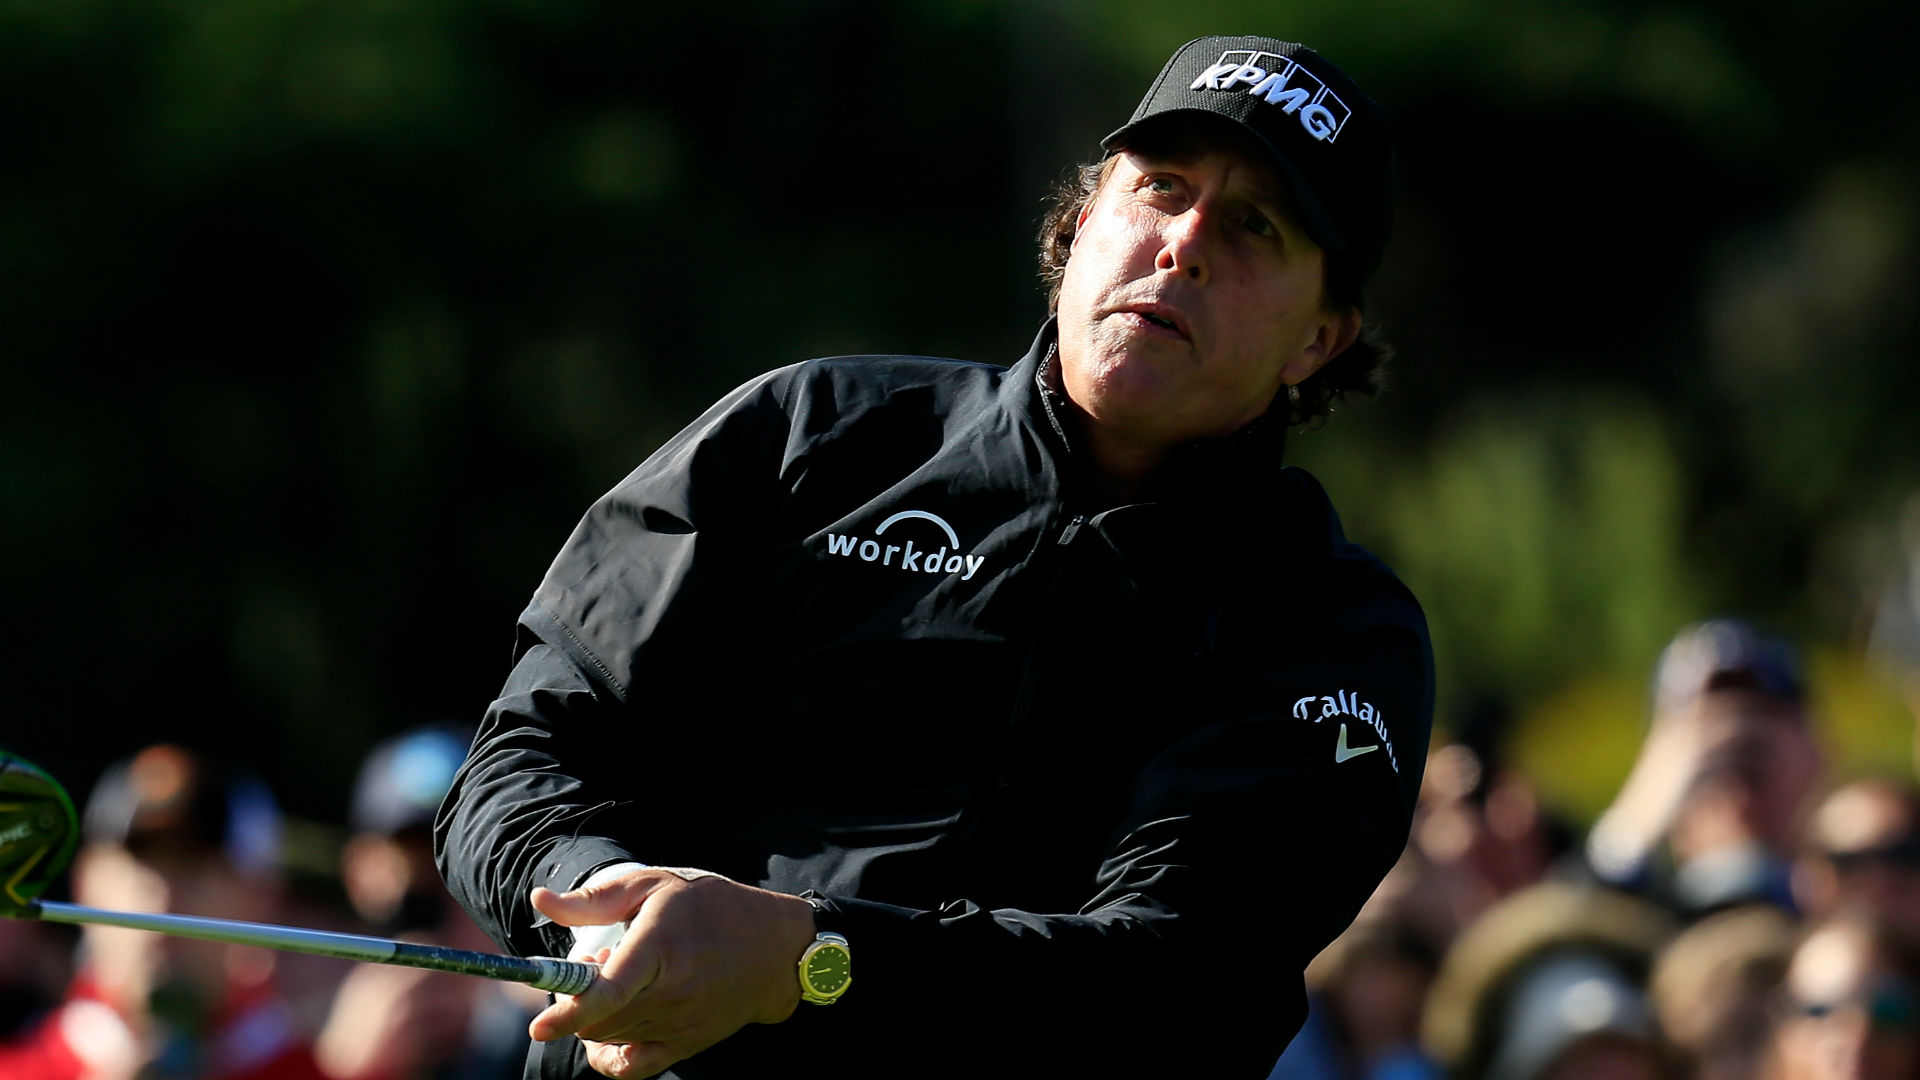 Phil Mickelson finishes out his fifth win at Pebble Beach Pro